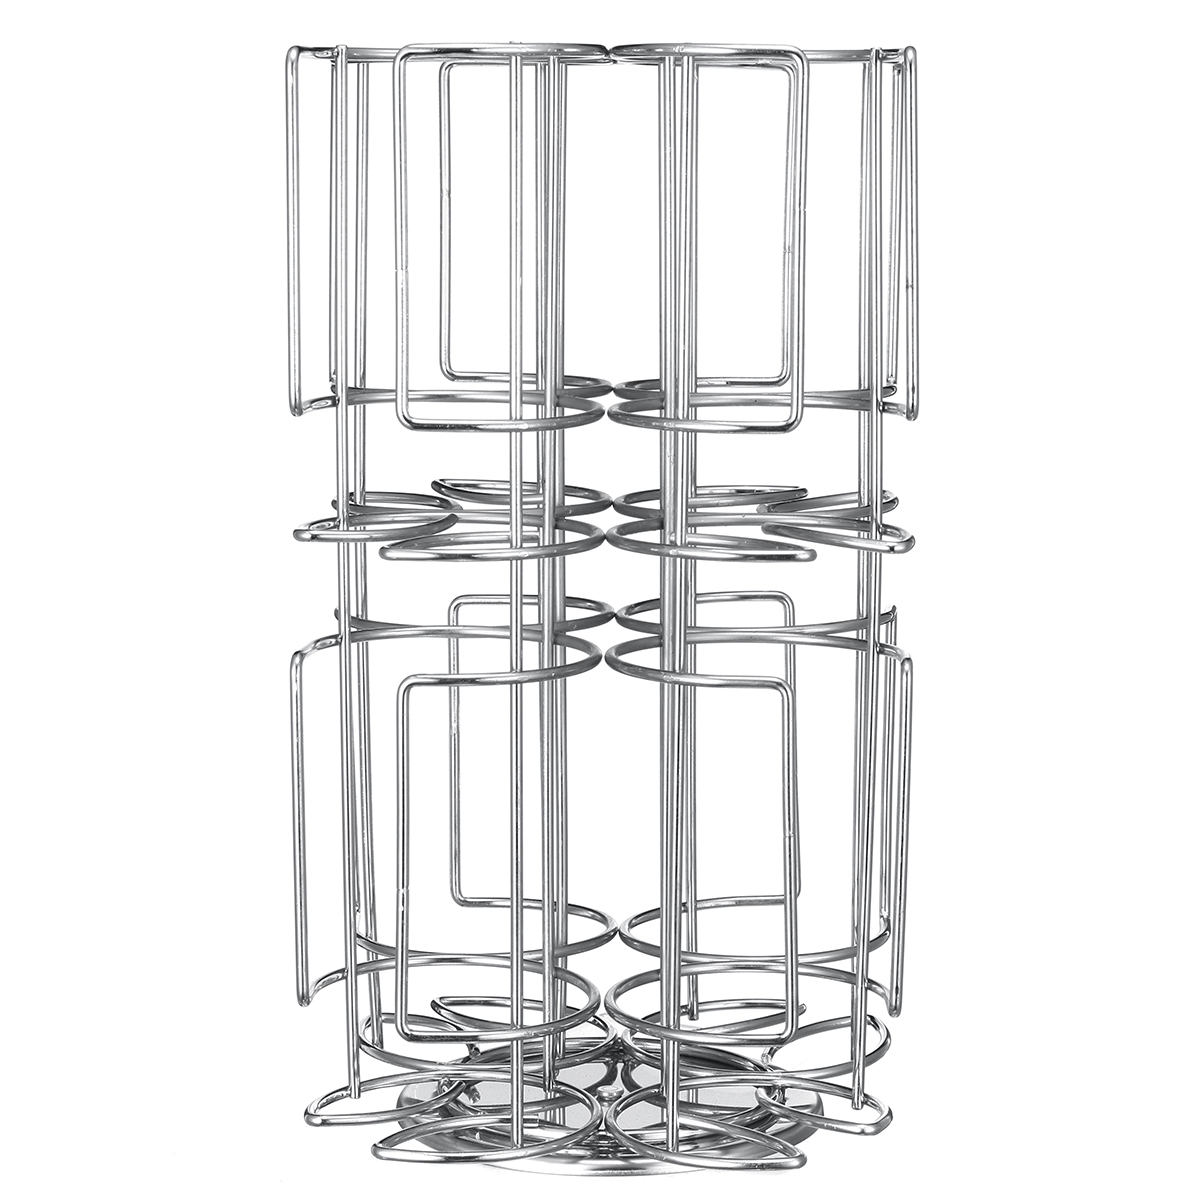 Coffee Capsule Cup Holder Storage Stand Chrome Tower Mount